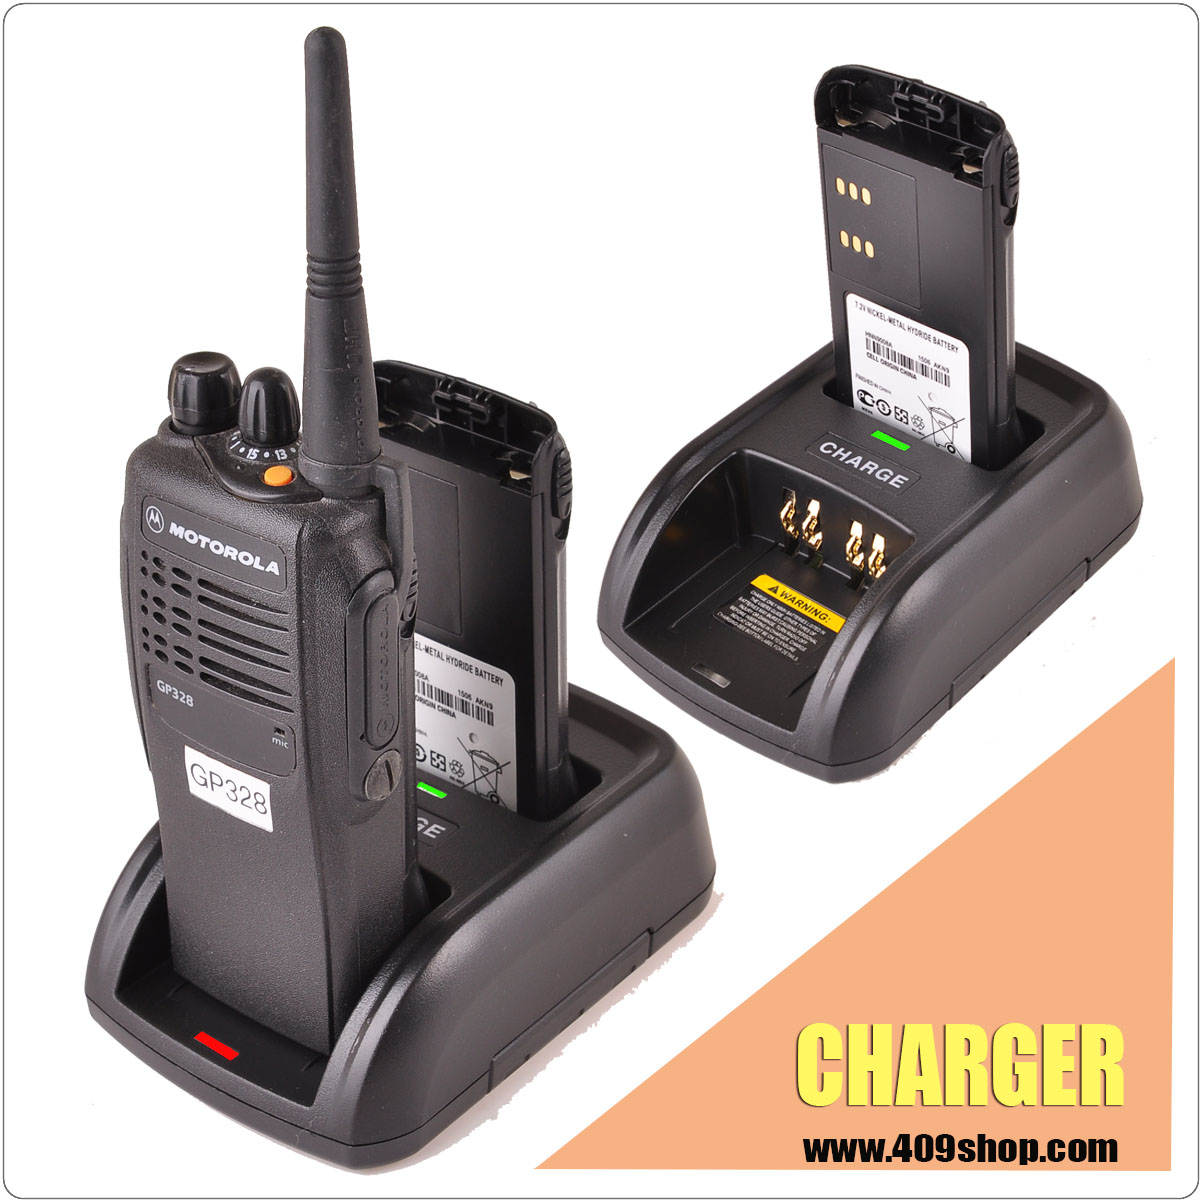 motorola-GP-328-charger